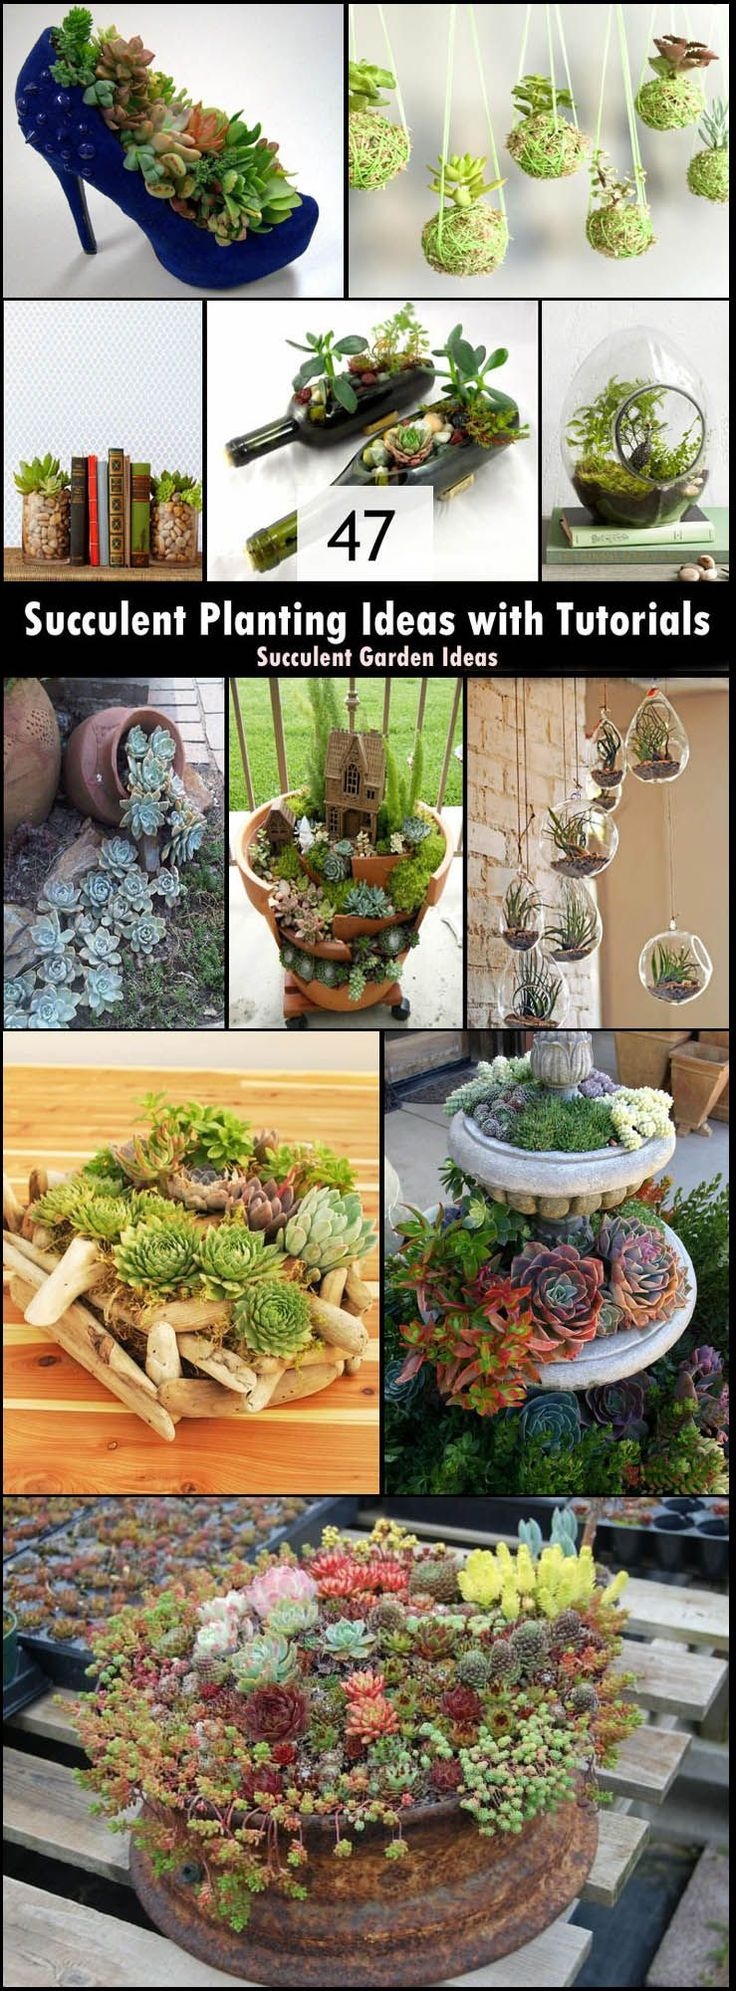 47 fabulous succulent planting ideas with diy tutorials you must look at add link planting and tutorials